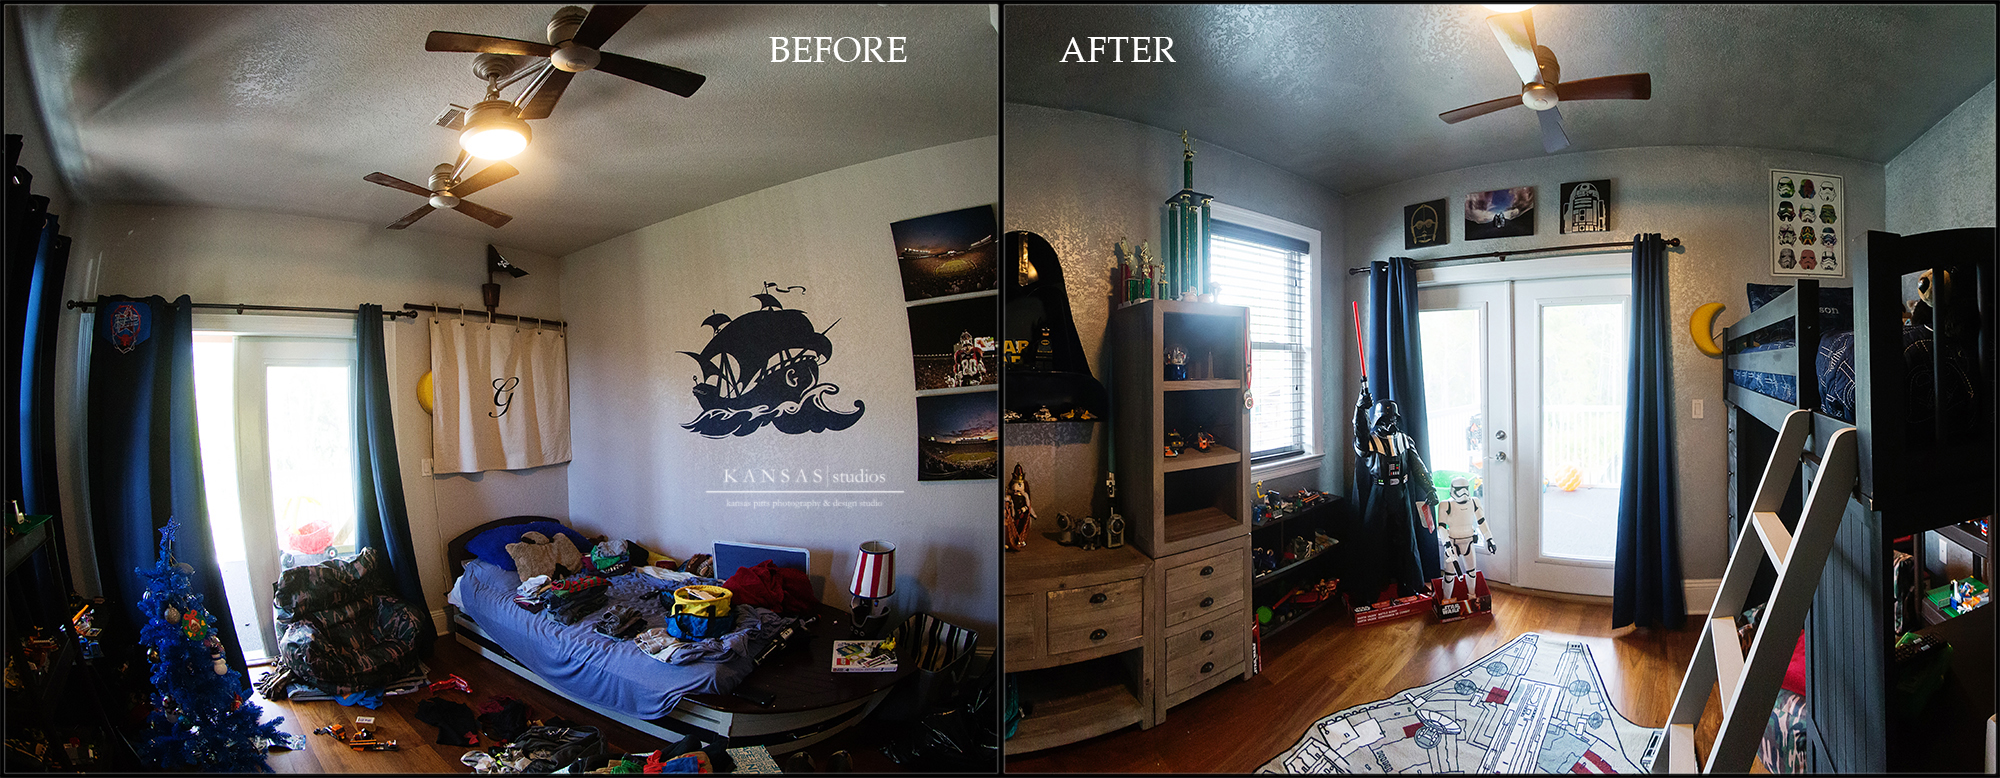 Star_Wars_Room_Before_and_After